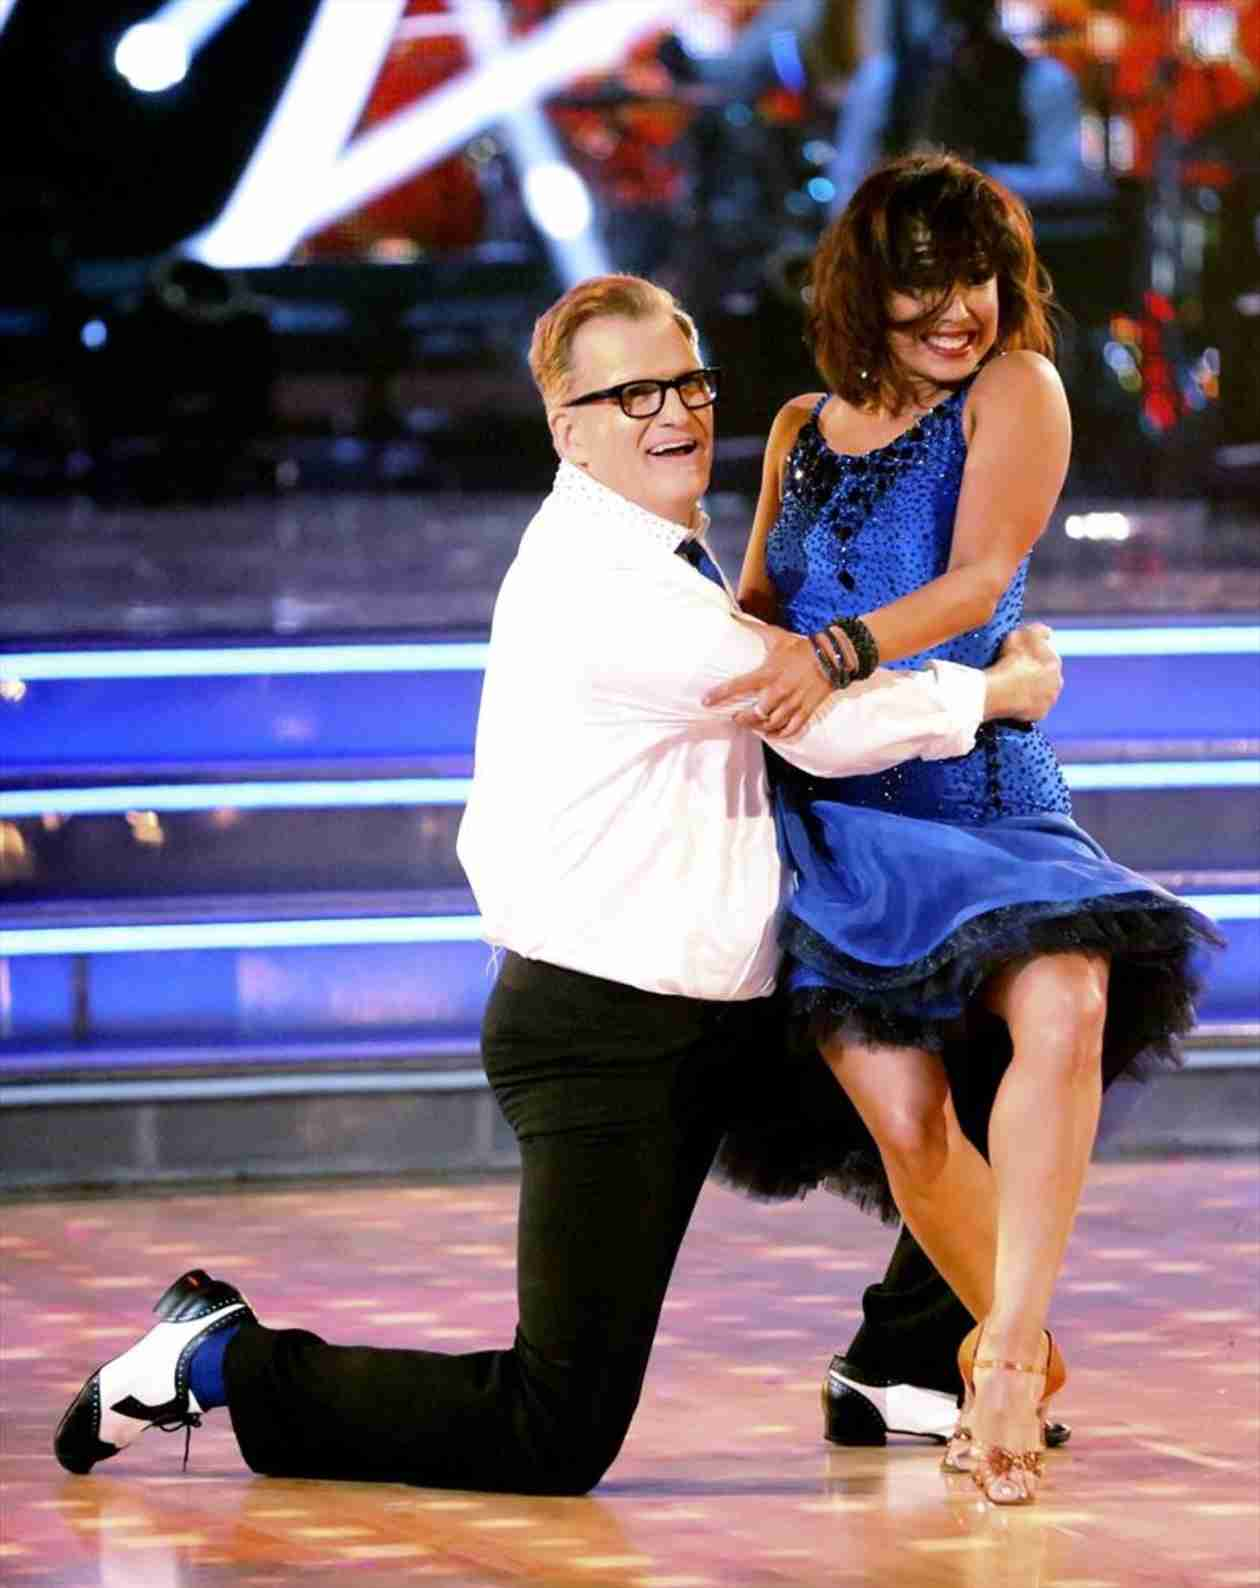 Dancing With the Stars 2014: Drew Carey and Cheryl Burke's Week 3 Waltz (VIDEO)